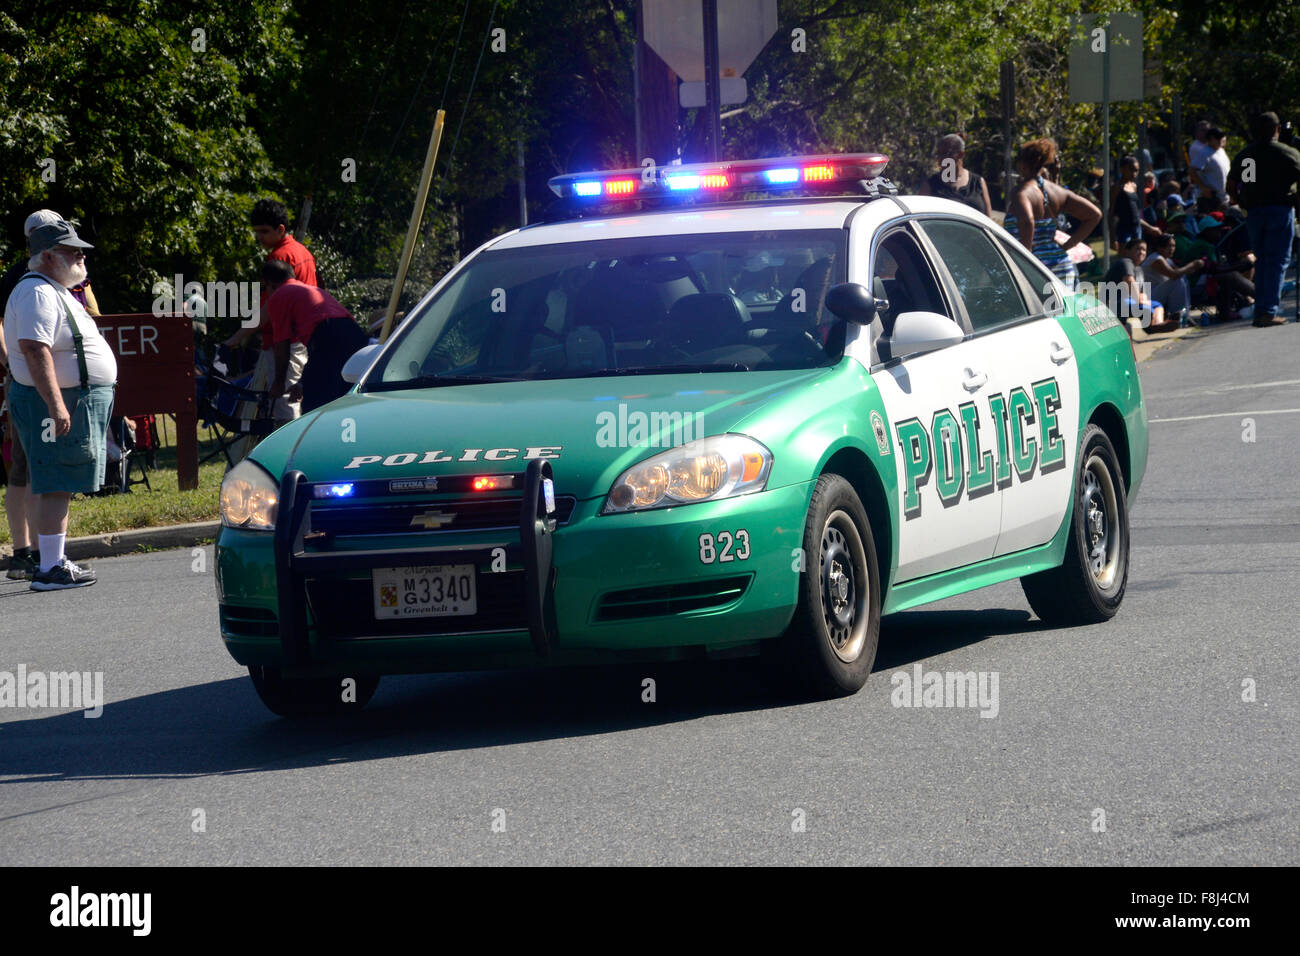 Greenbelt City Police car on a emergency 911 call - Stock Image